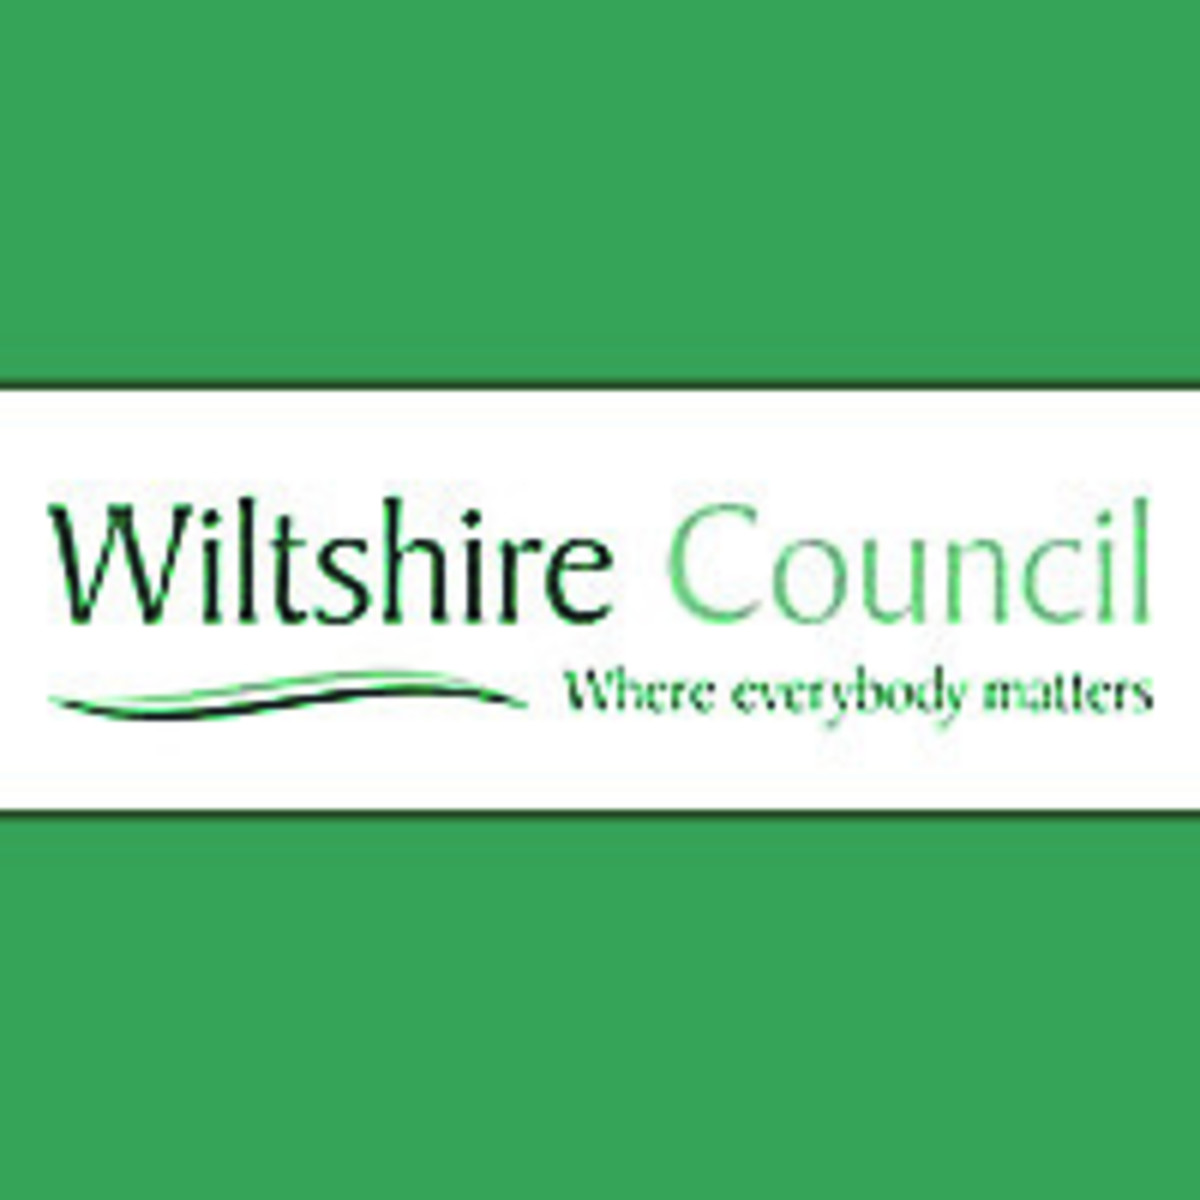 Former Calne resident Pamela Ewart, 63, will have to repay £20,000 in benefits after being found guilty of benefit fraud during a joint investigation involving Wiltshire C